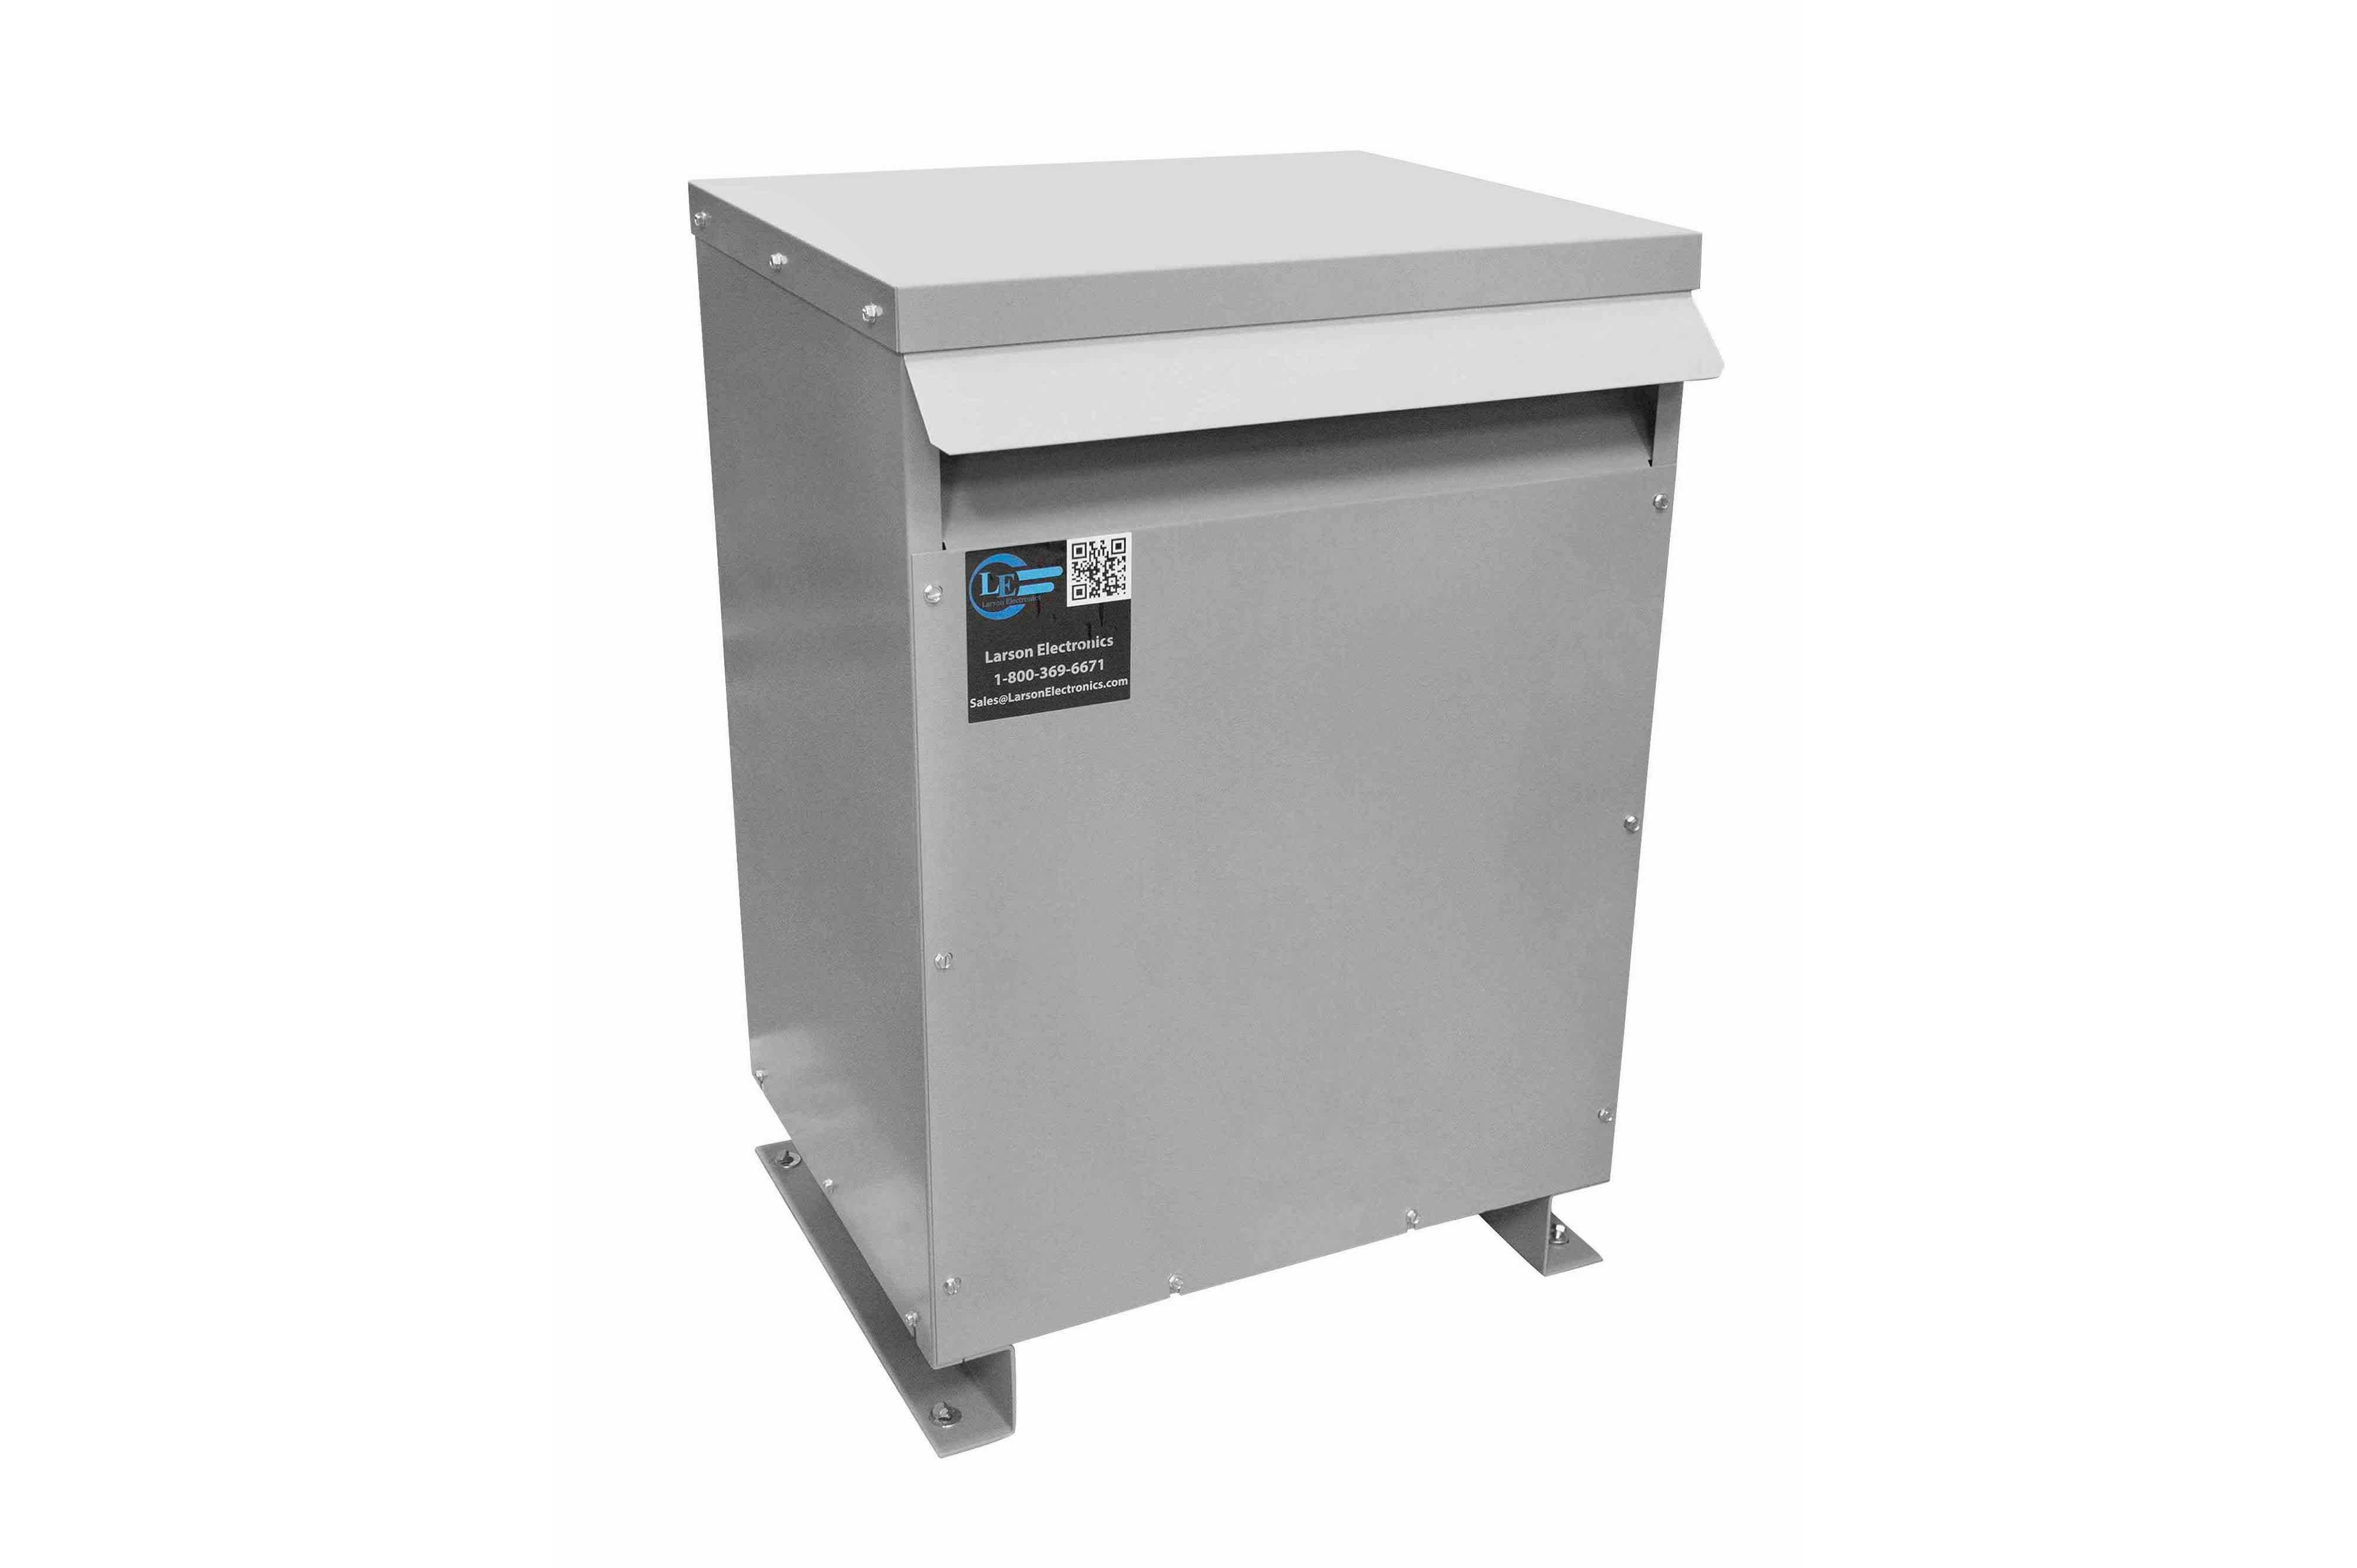 125 kVA 3PH Isolation Transformer, 600V Wye Primary, 208V Delta Secondary, N3R, Ventilated, 60 Hz